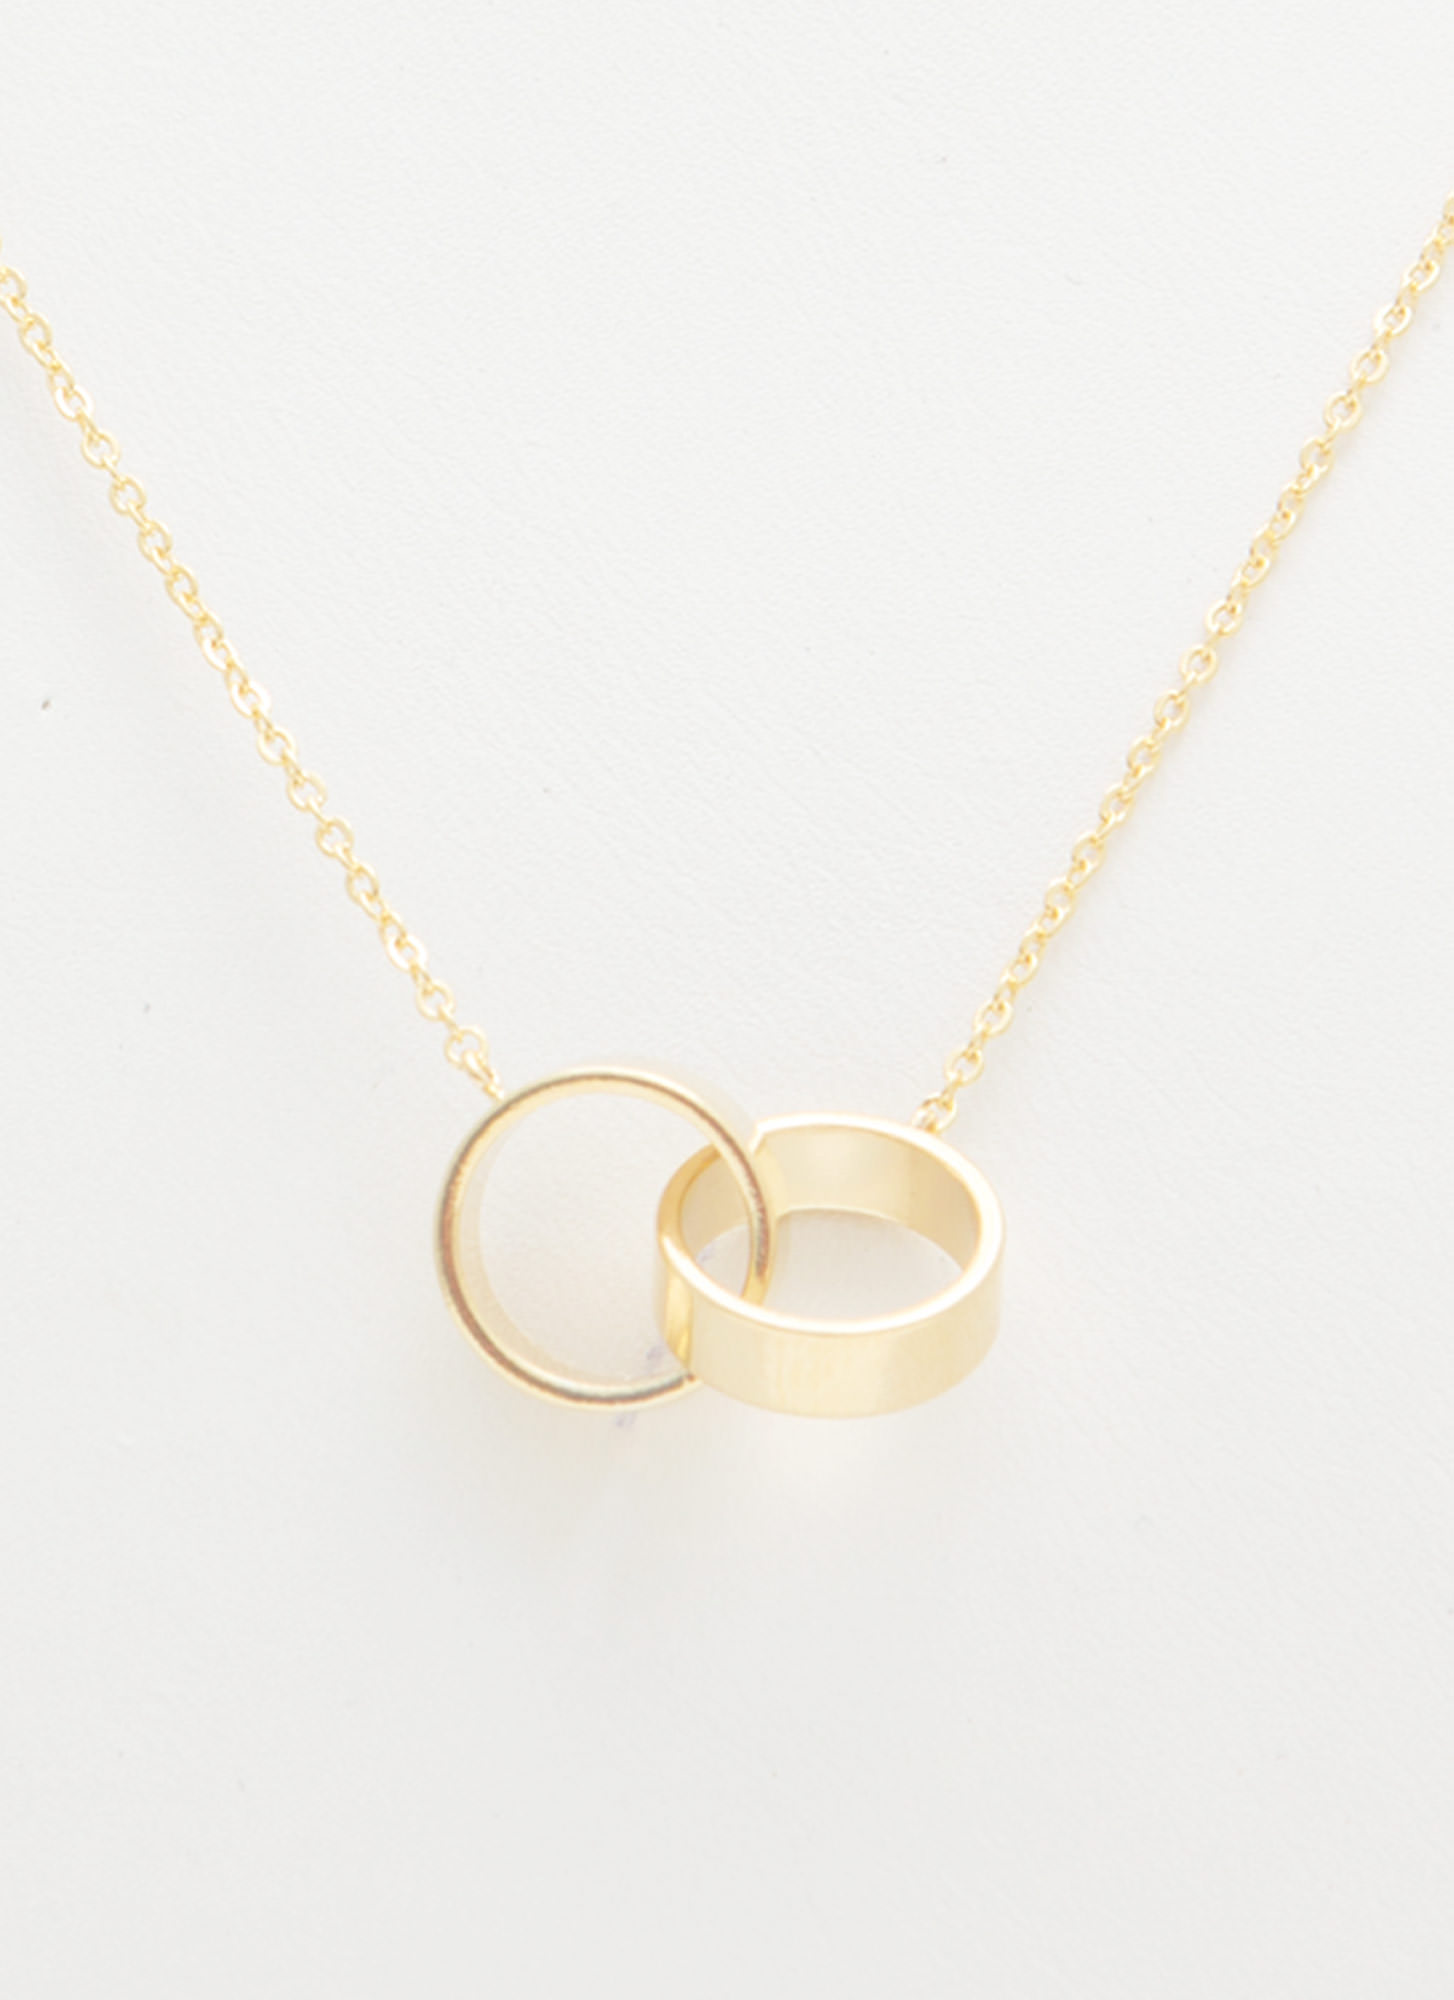 Double Linked Rings Necklace GOLD